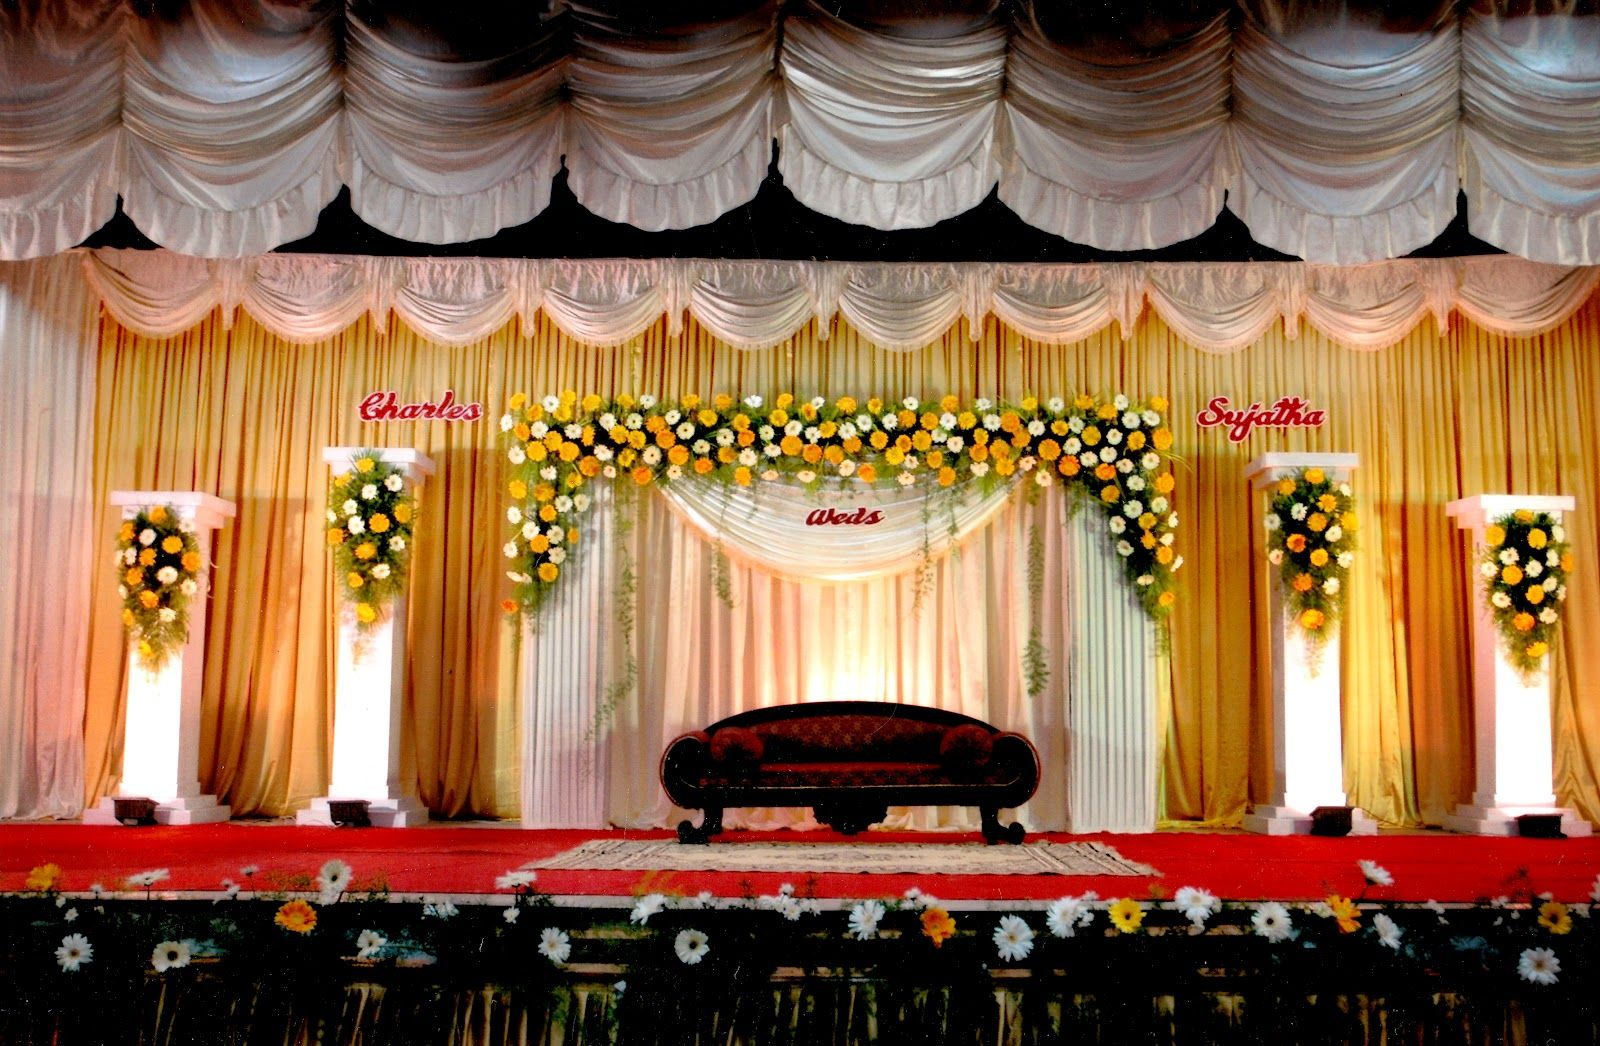 Wedding decoration ideas for hall  Perfect traditional wedding decor bookeventz wedding weddingdecor